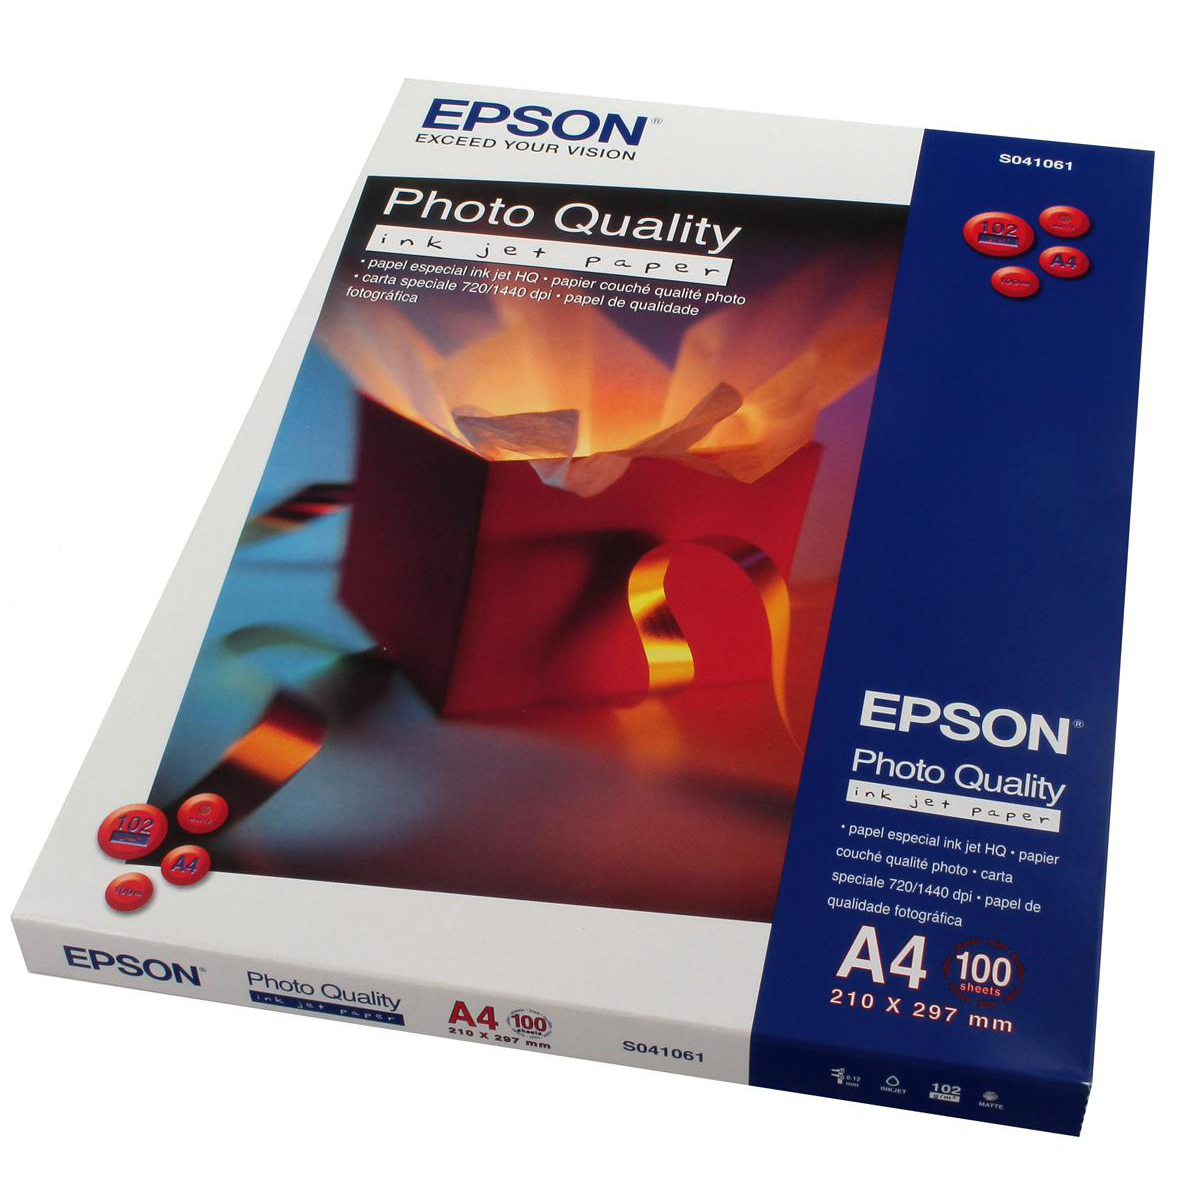 Epson Photo Quality Inkjet Paper Matt 102gsm Max.1440dpi A4 White Ref C13S041061 100 Sheets